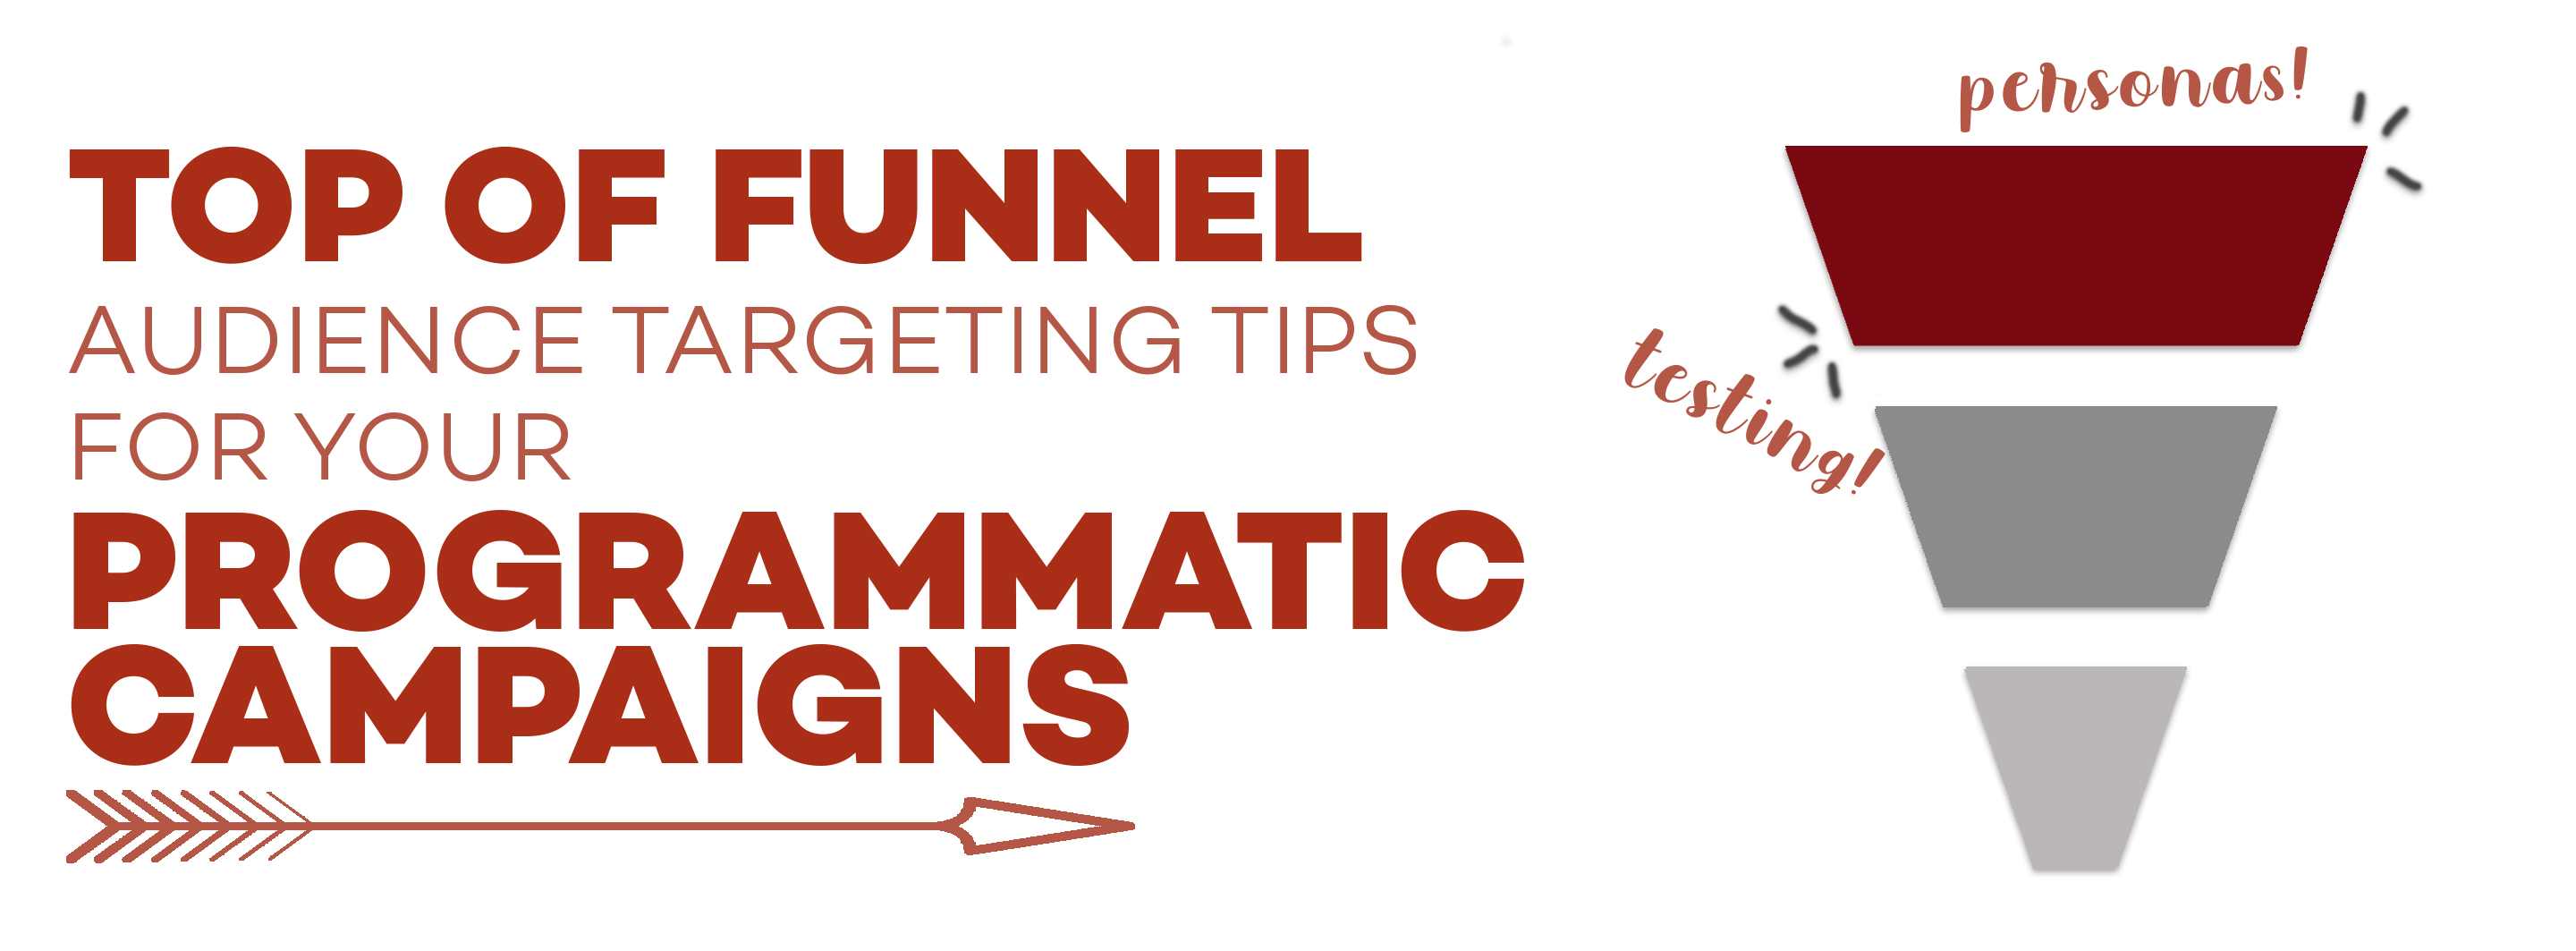 Top of funnel programmatic tips